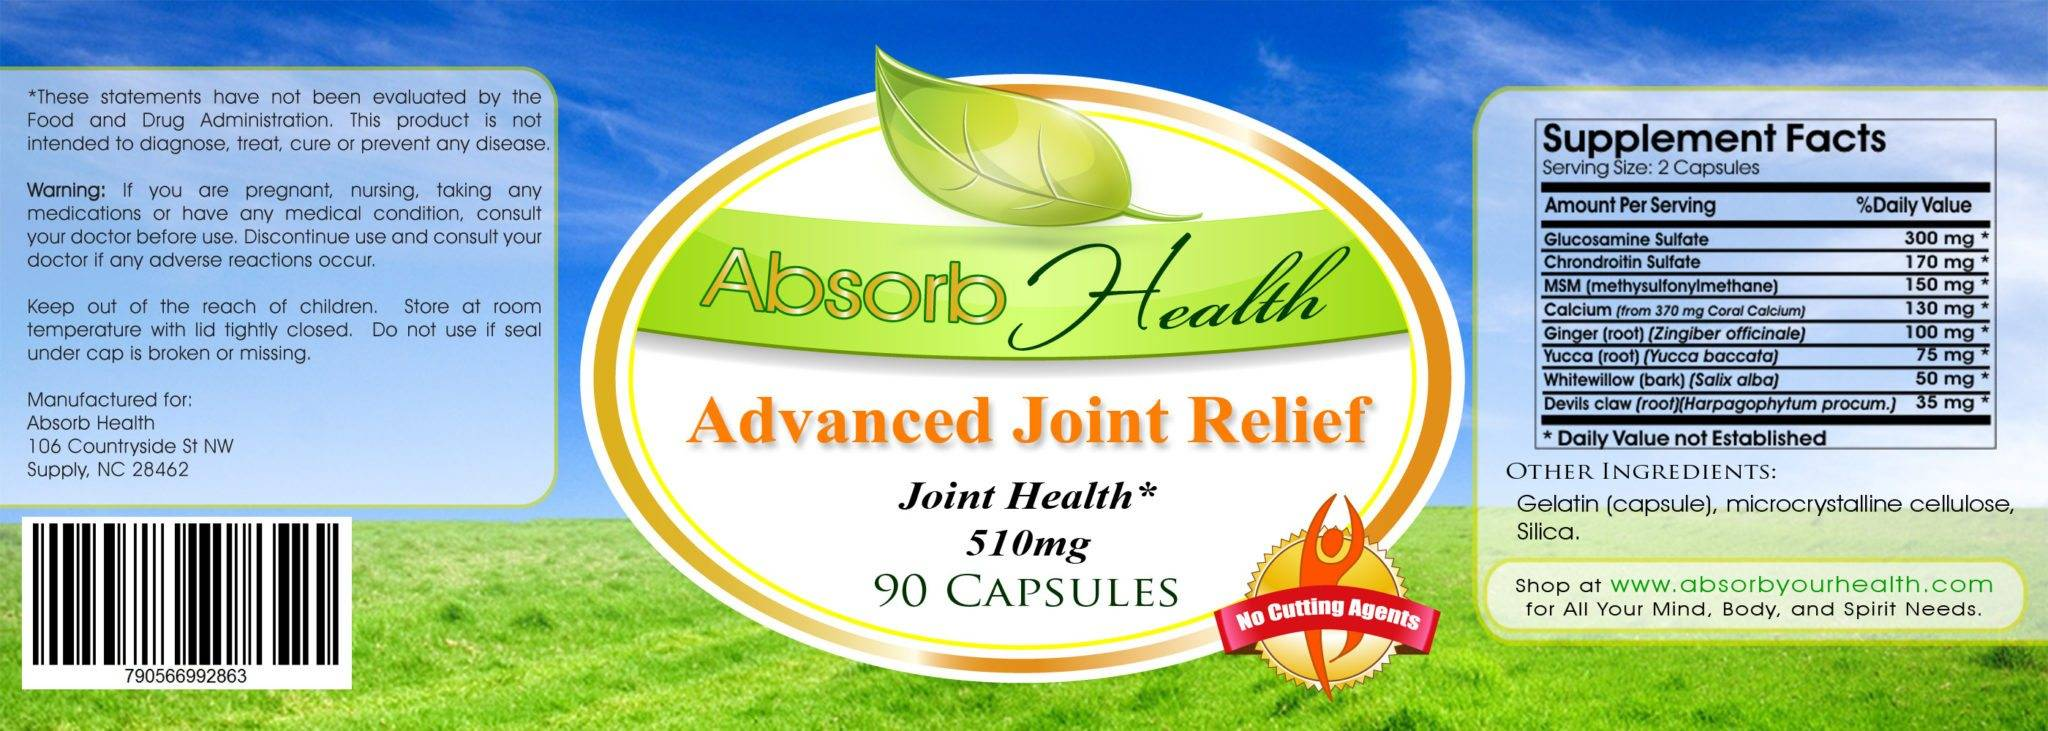 joint pain supplement label